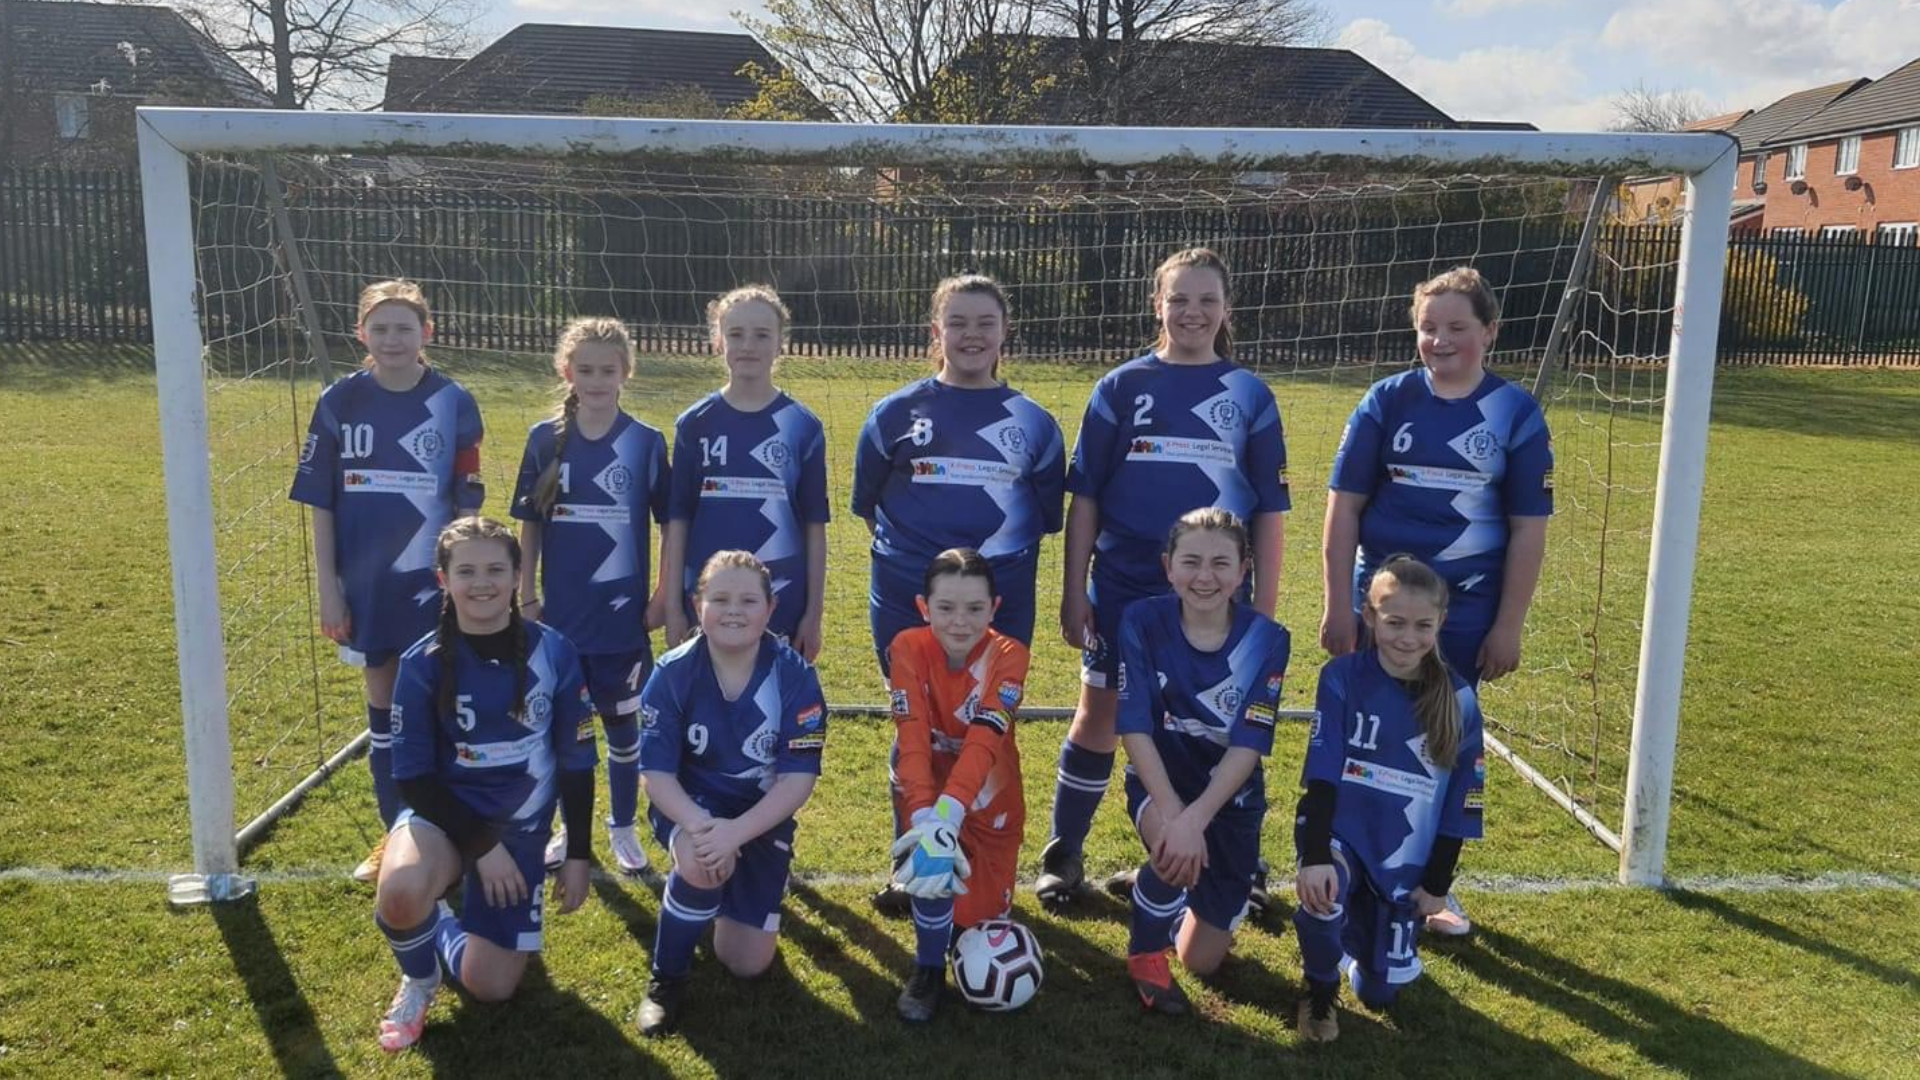 Girls team are on the ball with new kit